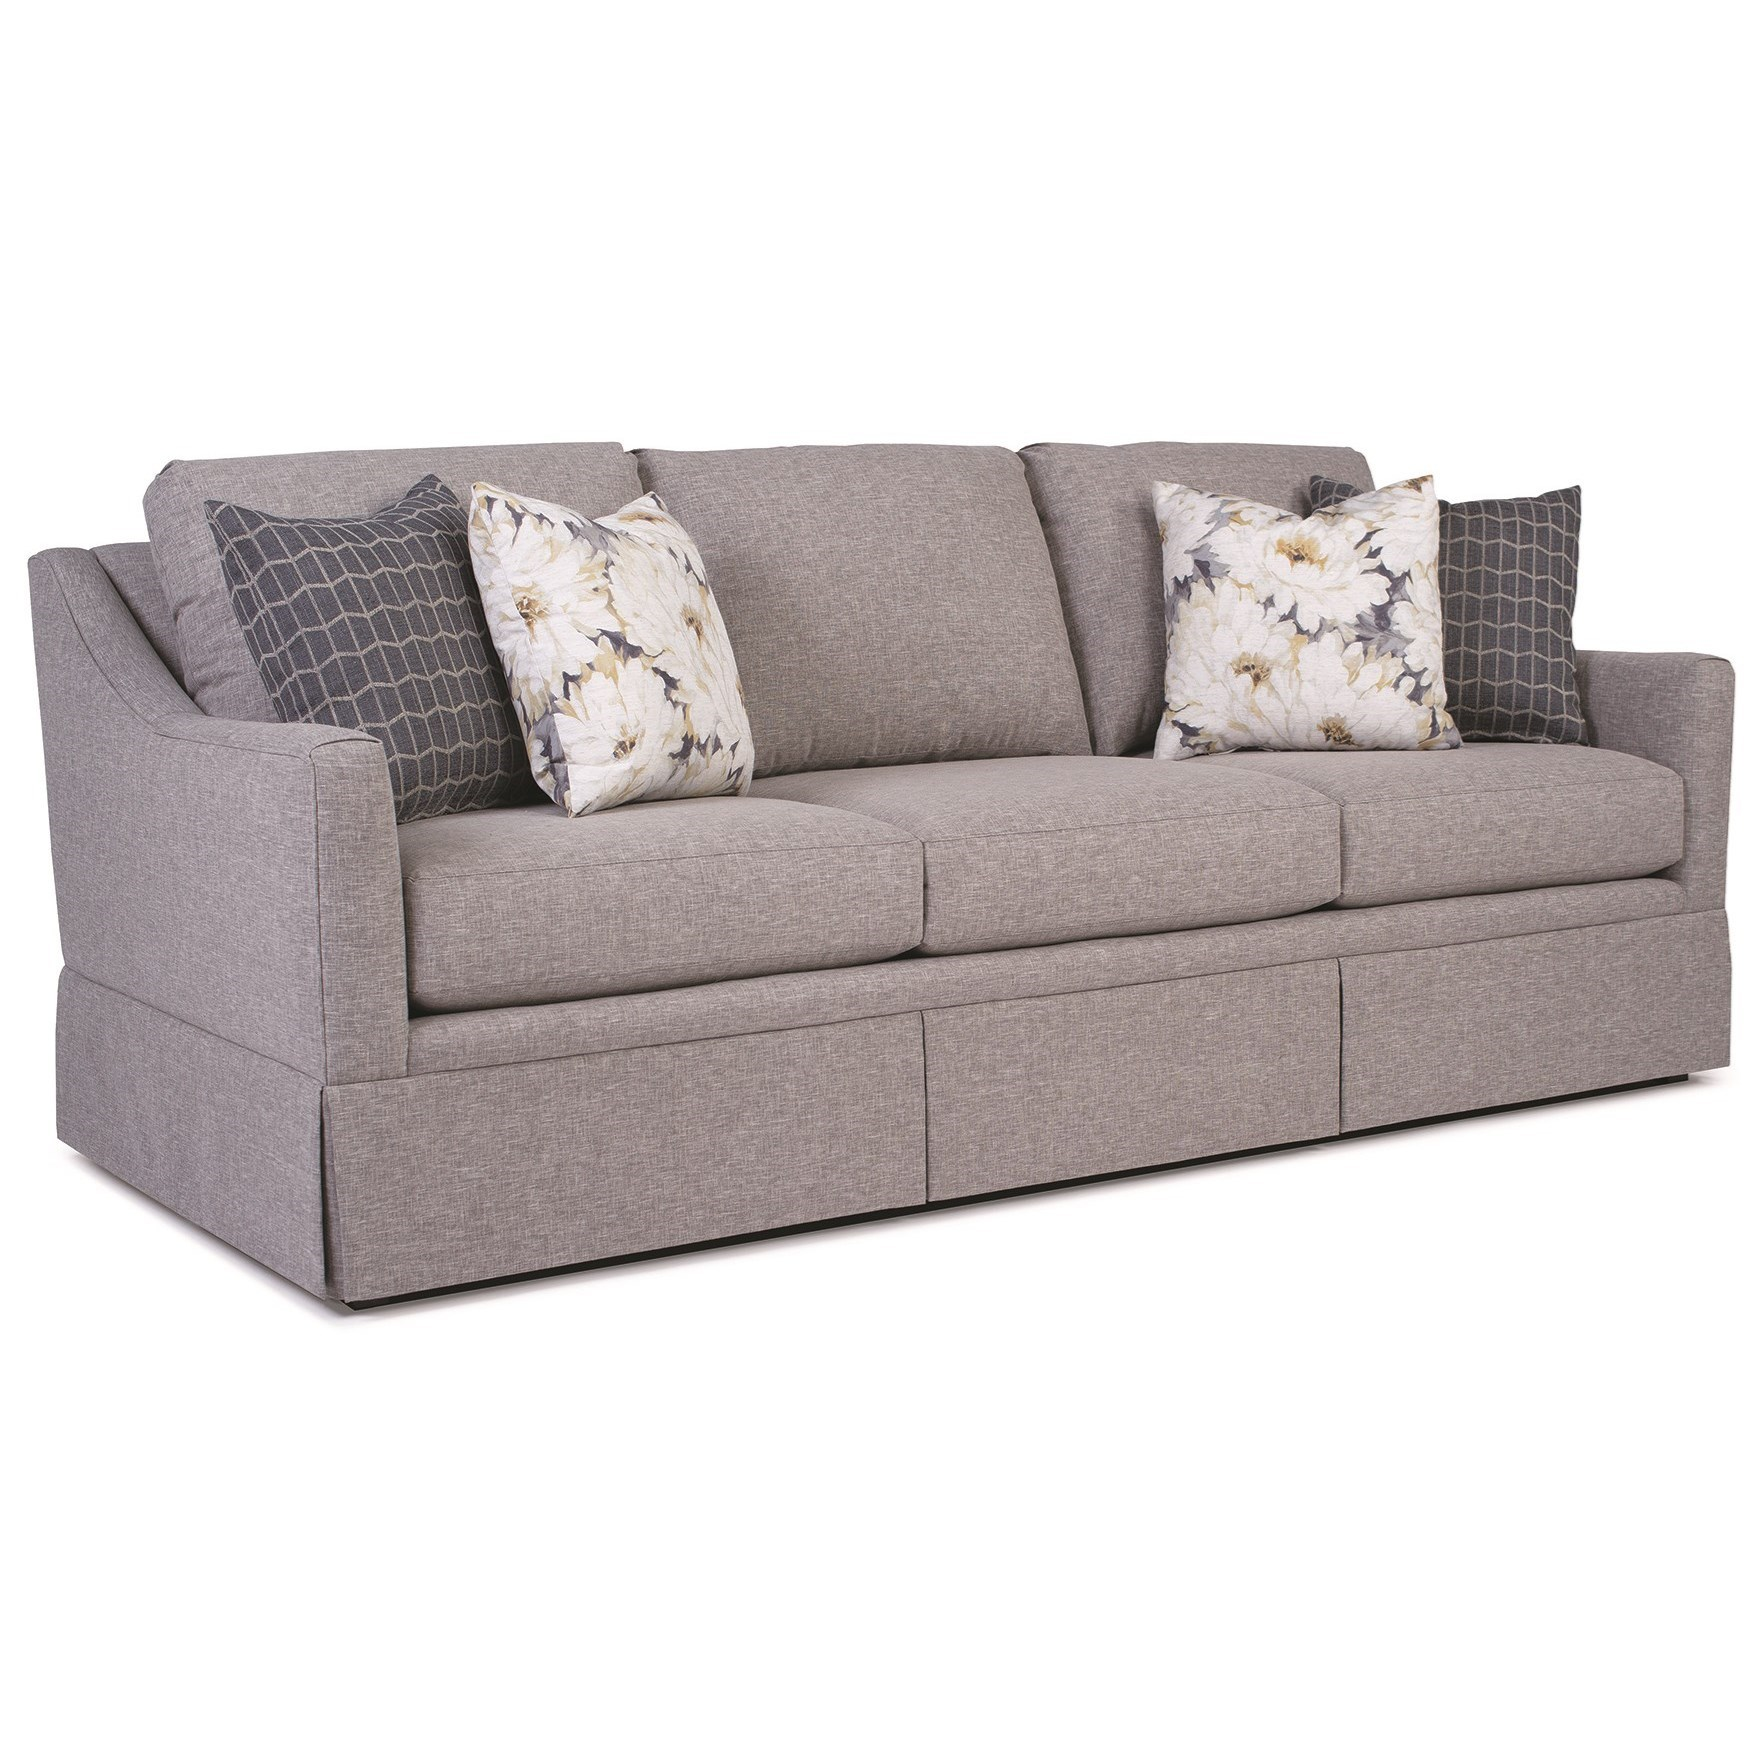 260 Sofa by Smith Brothers at Rooms for Less